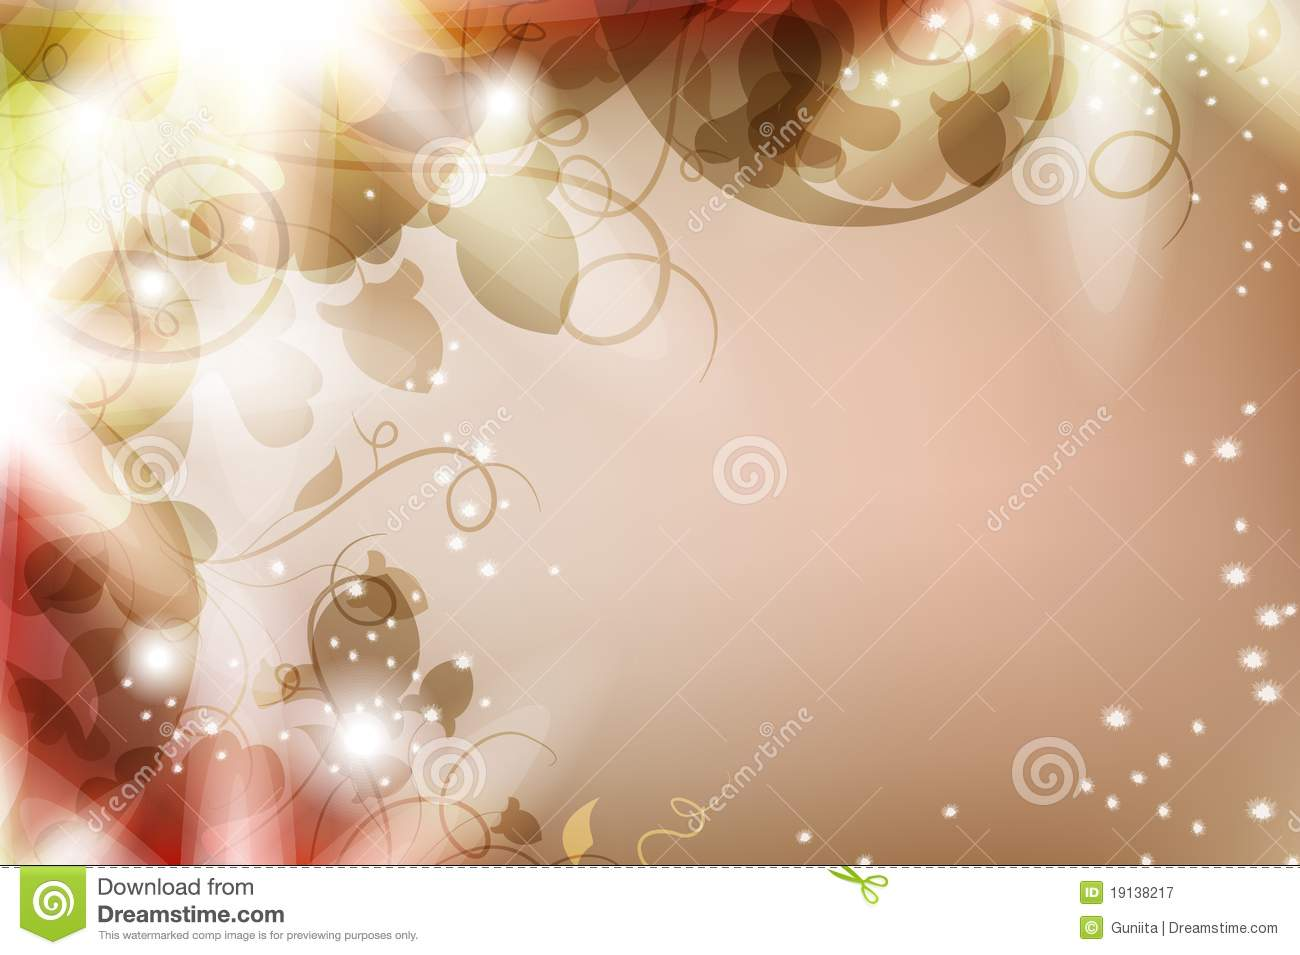 magic flower background royalty free stock photography